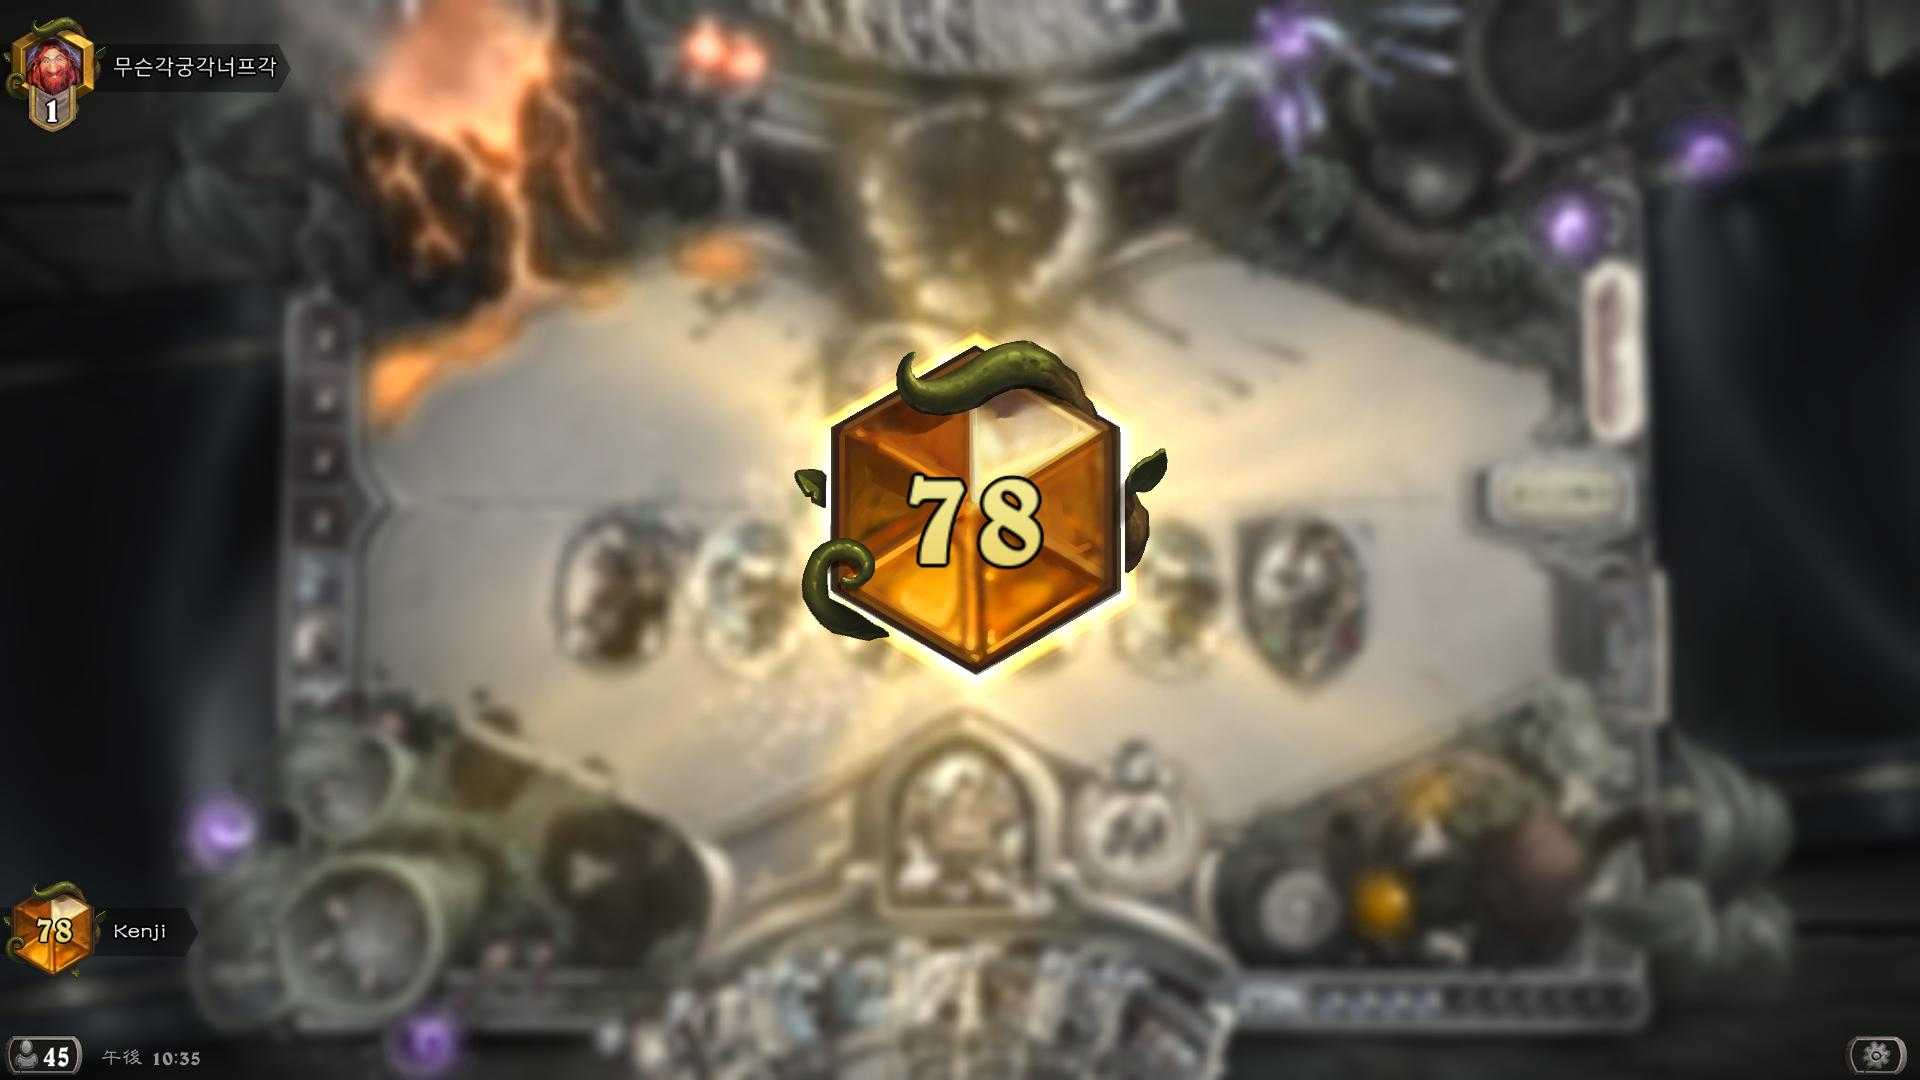 78 Legend] Odd Warrior (oMTYLPUPxNanyxG) - Hearthstone Decks